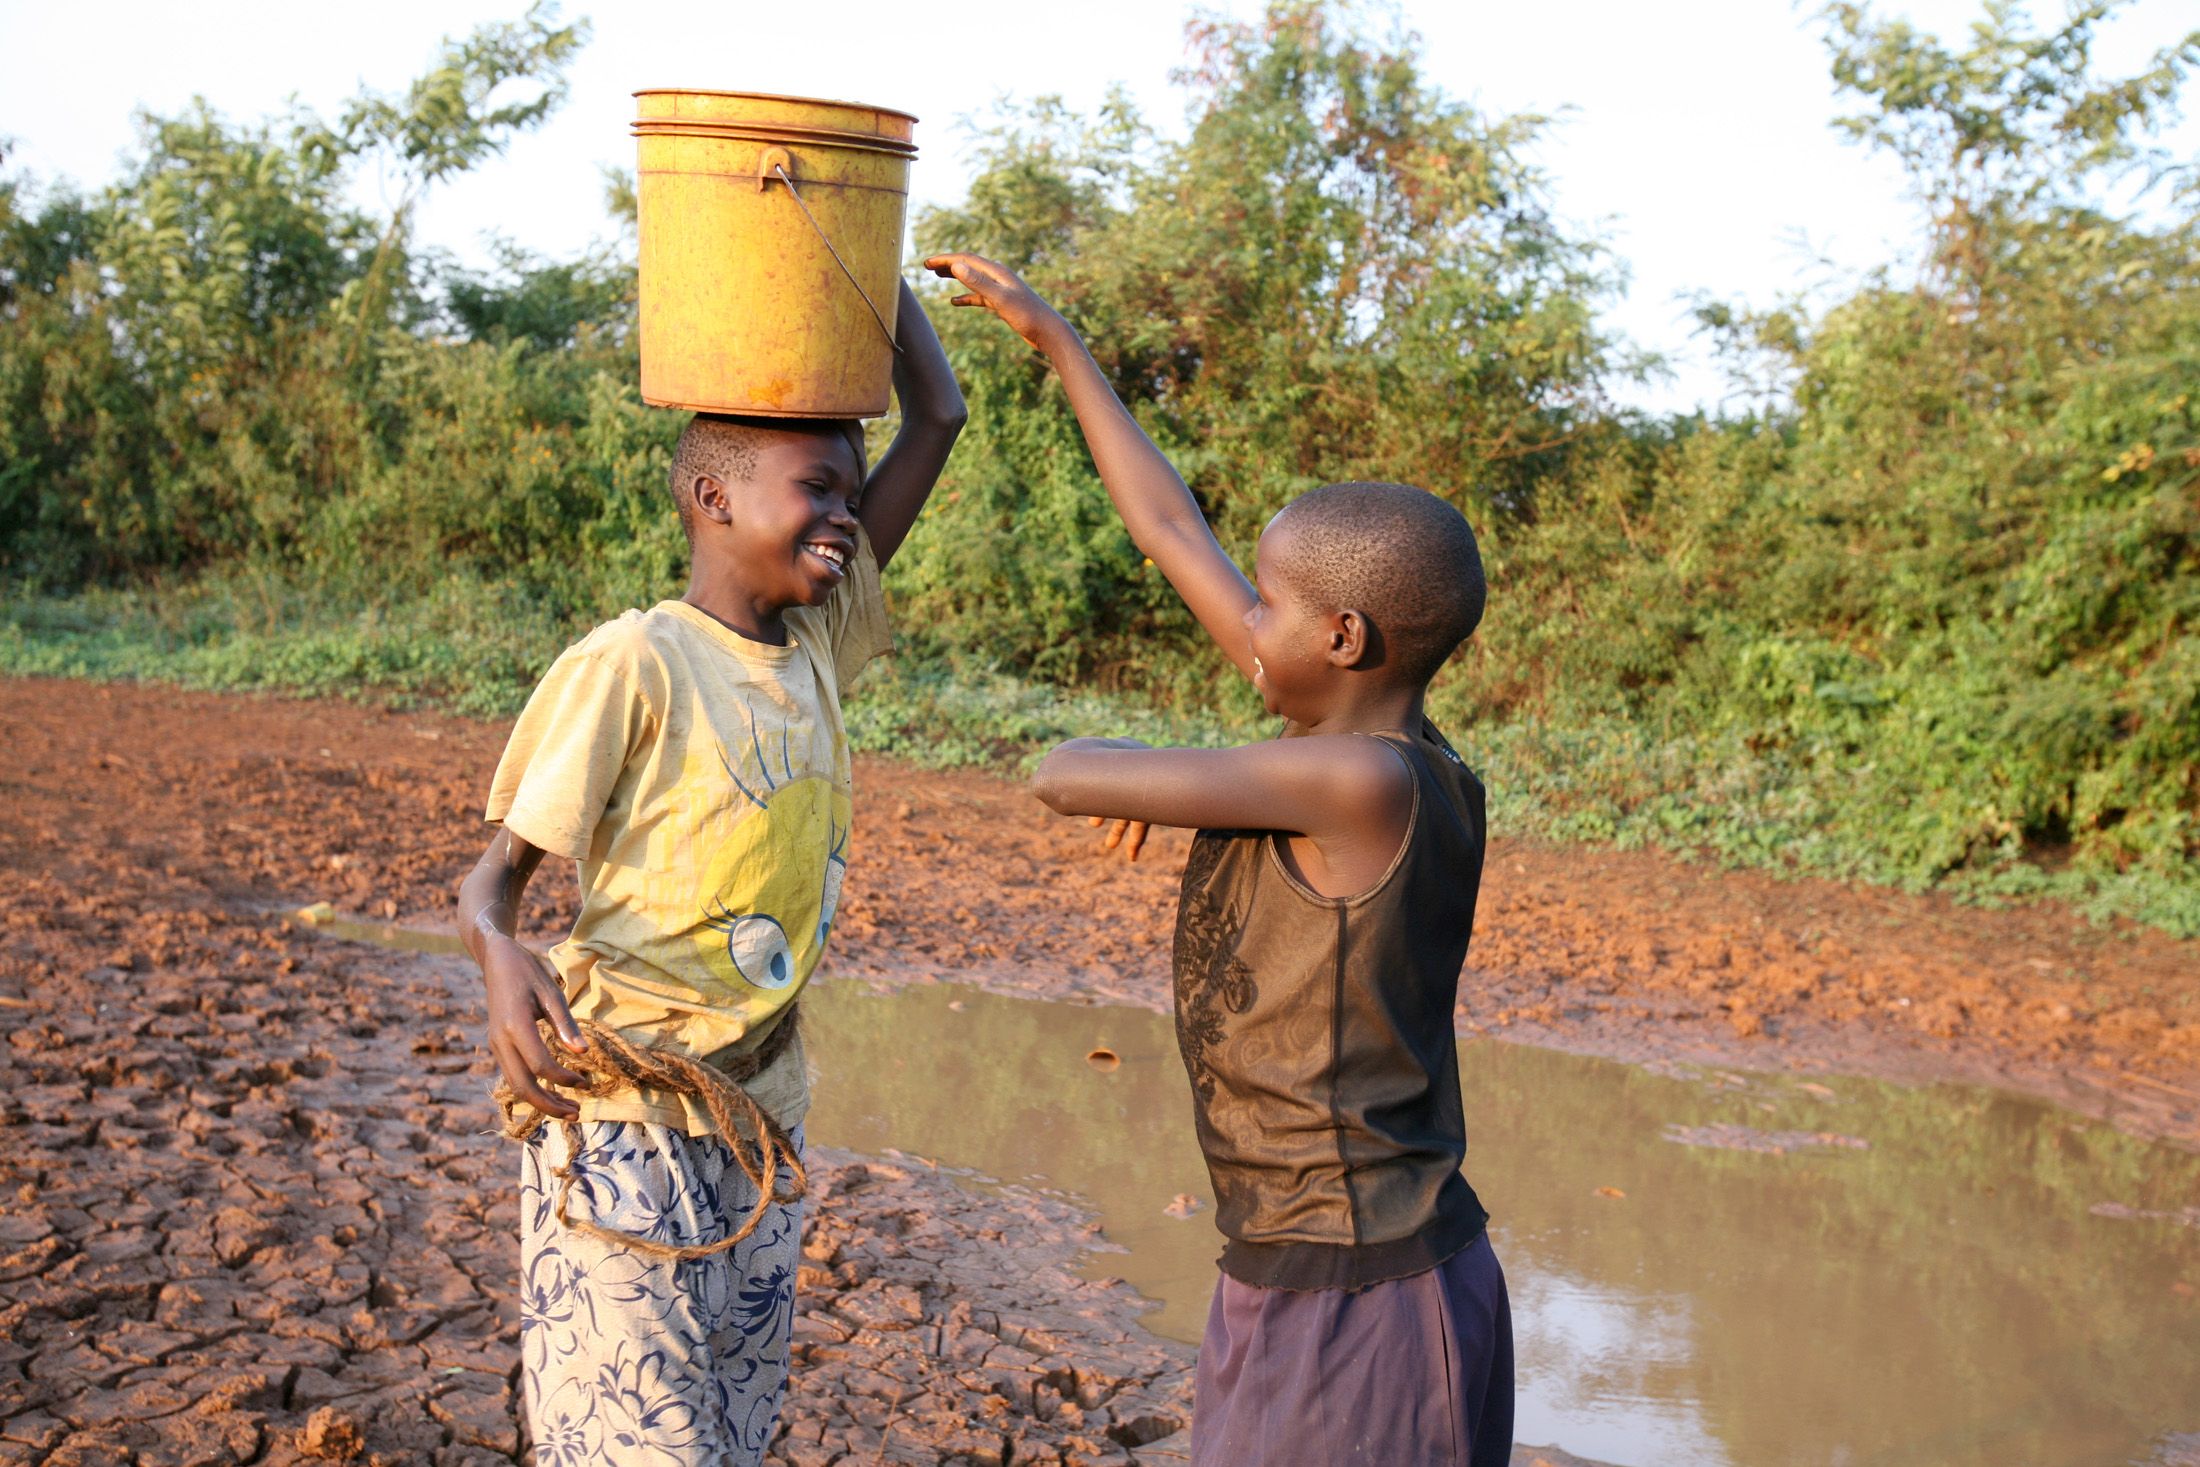 Children play near a dried up water pan in Barchando, Bondo